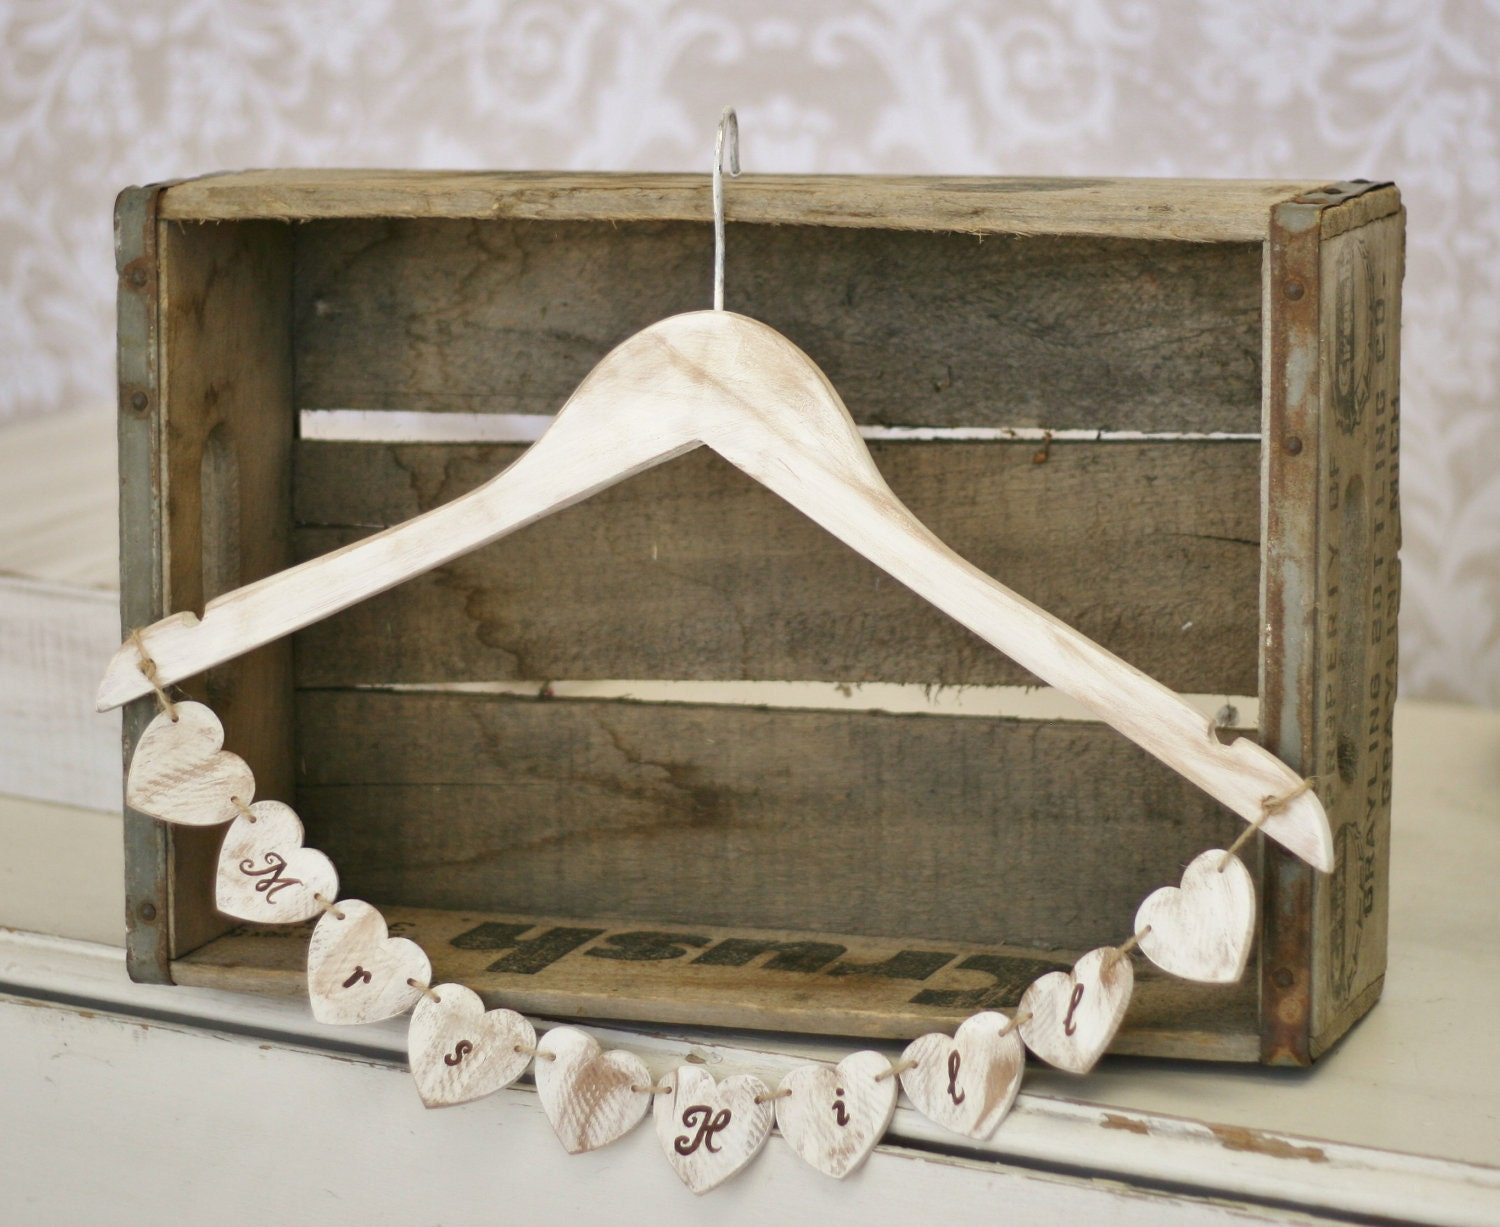 Personalized Wedding Dress Hanger Rustic Shabby Chic Decor